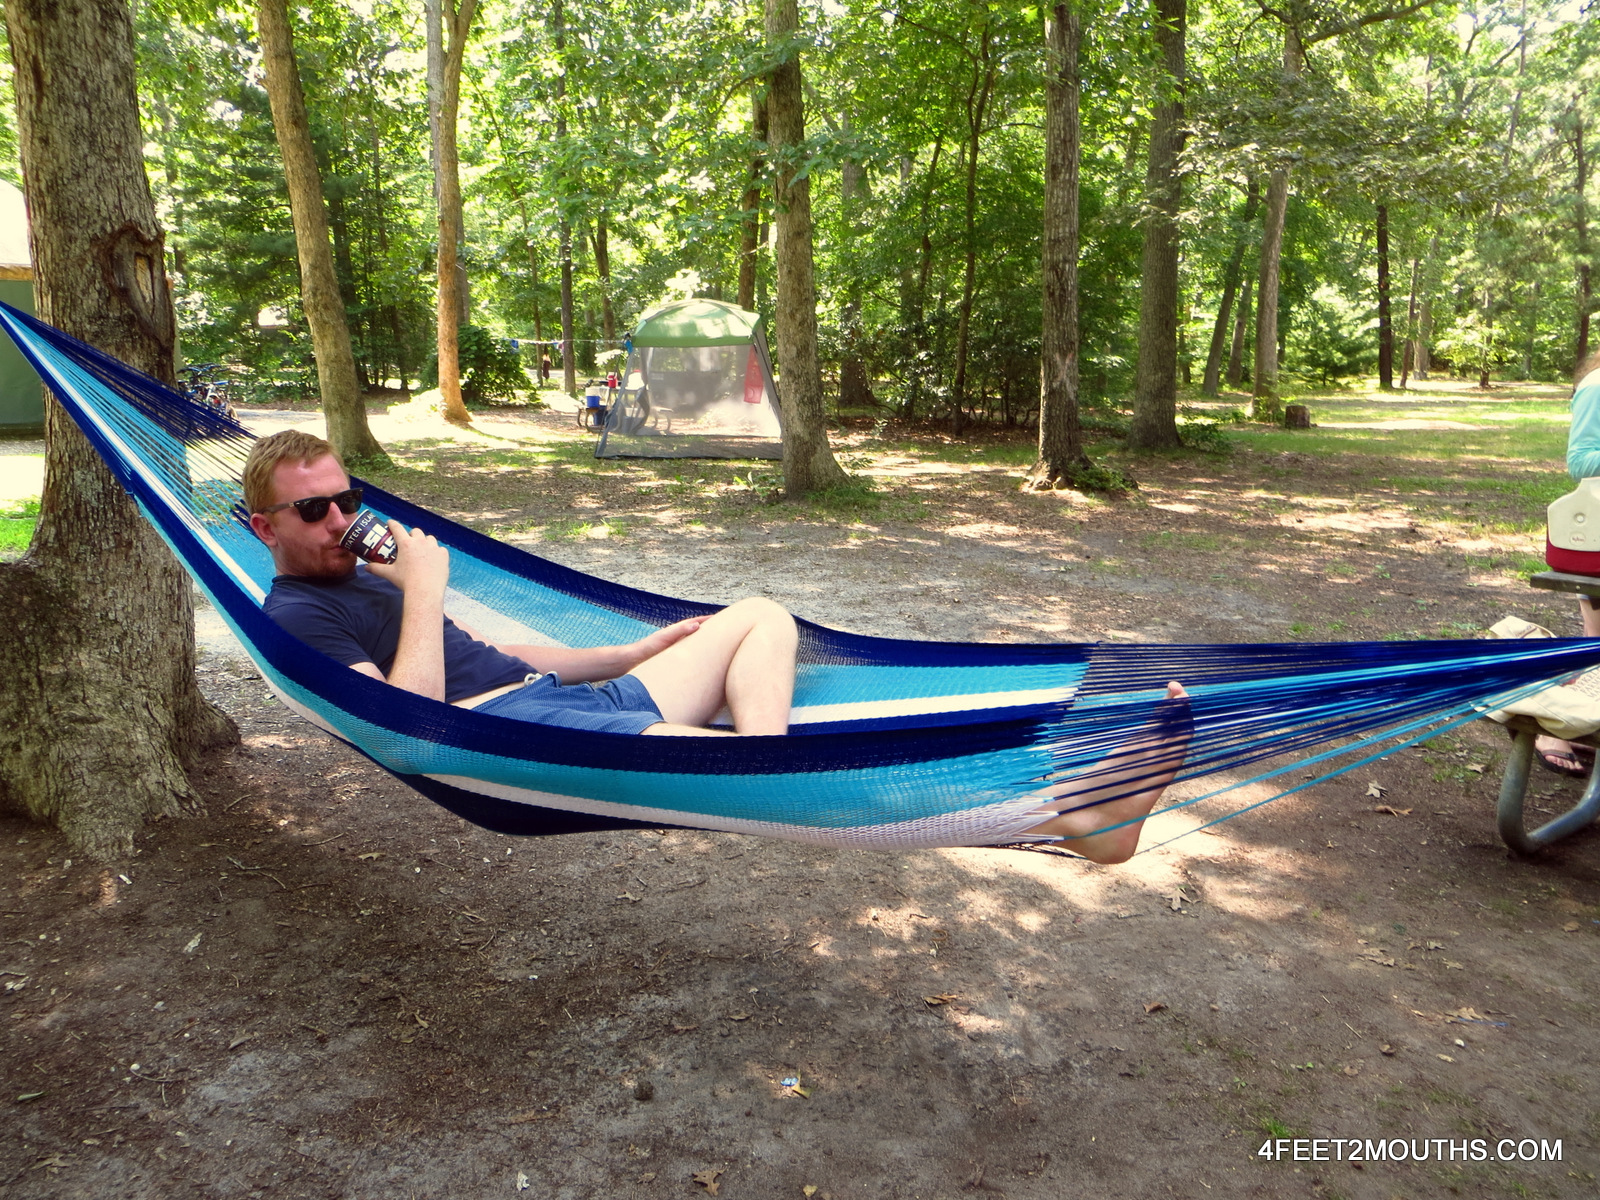 Medium image of andrew after he successfully hung the hammock